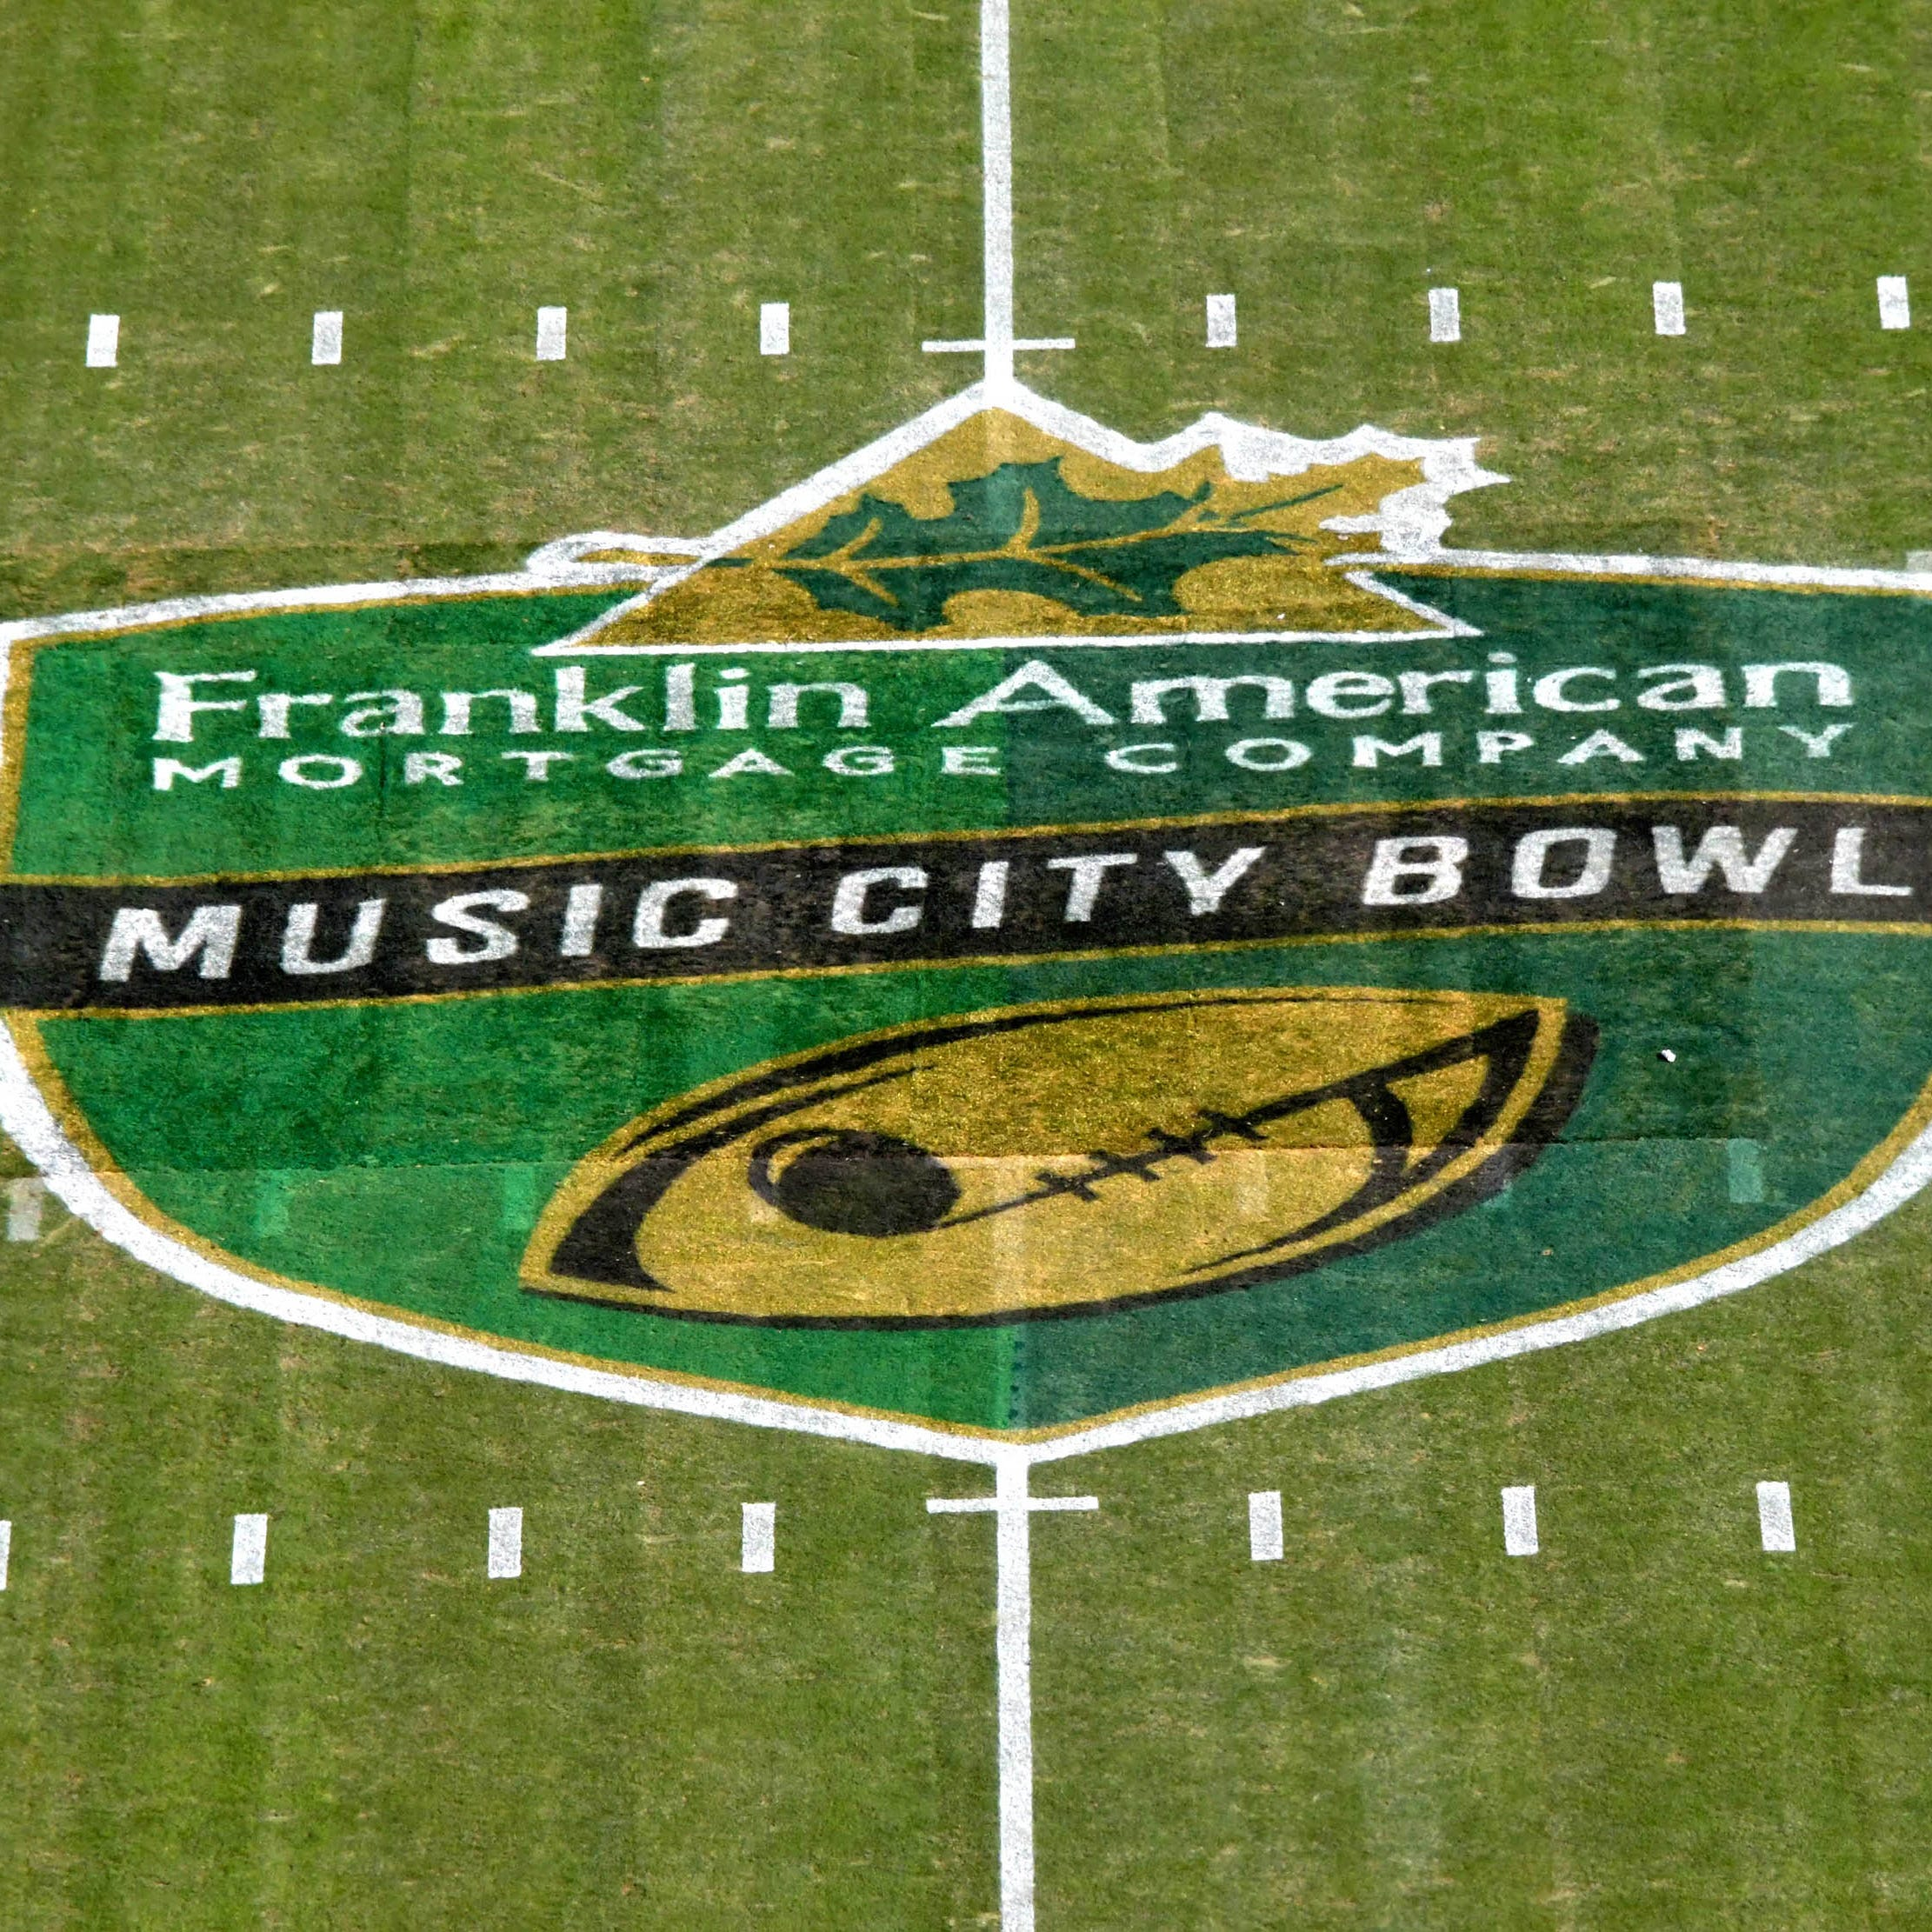 Music City Bowl name change coming in 2019 or 2020